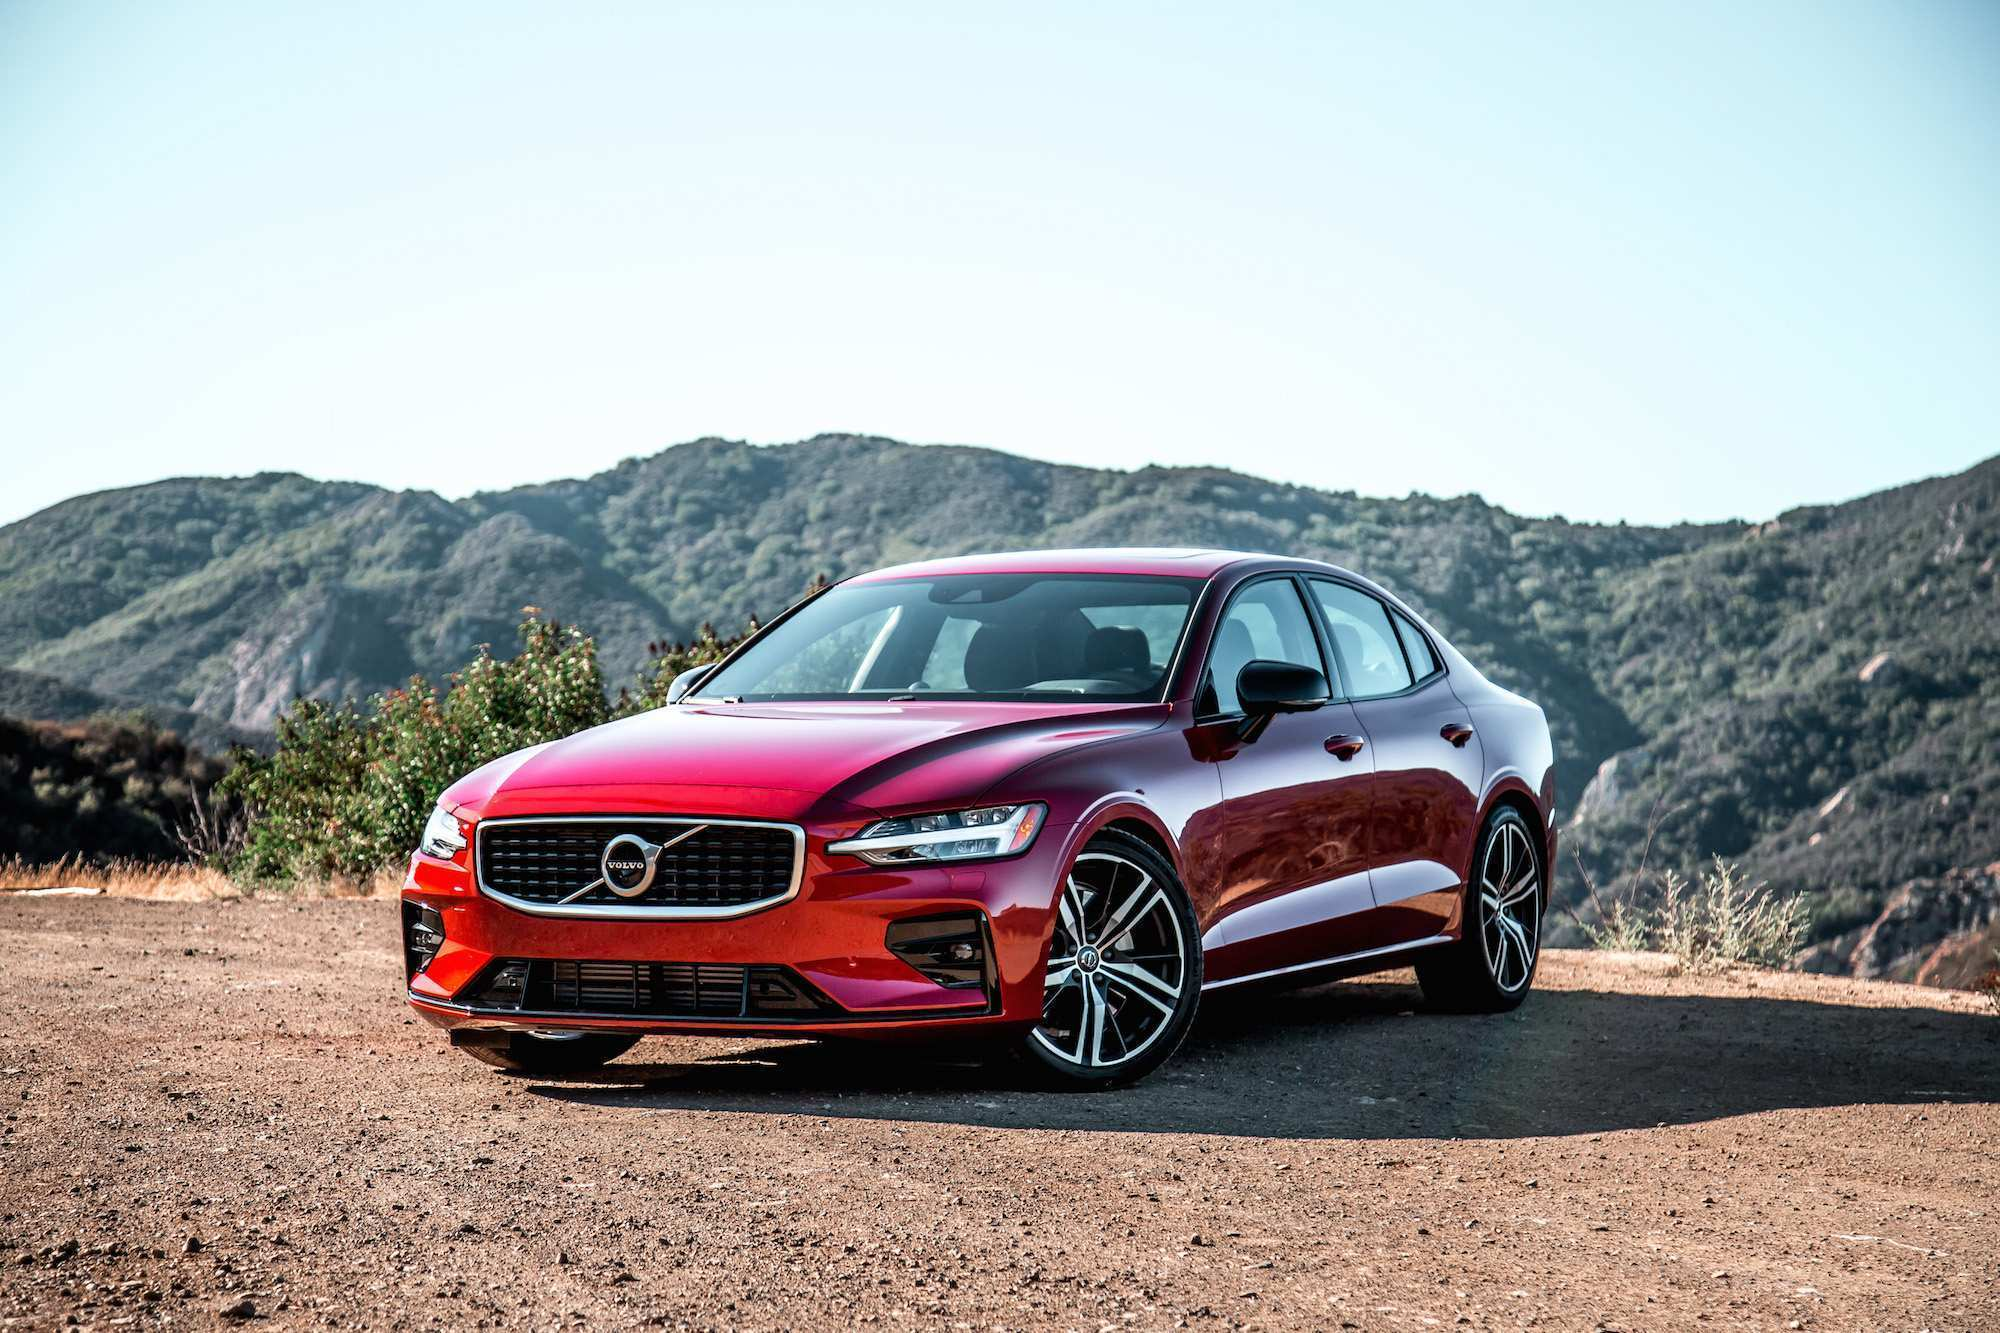 69 Best Review Volvo S60 2020 Hybrid Price and Review by Volvo S60 2020 Hybrid